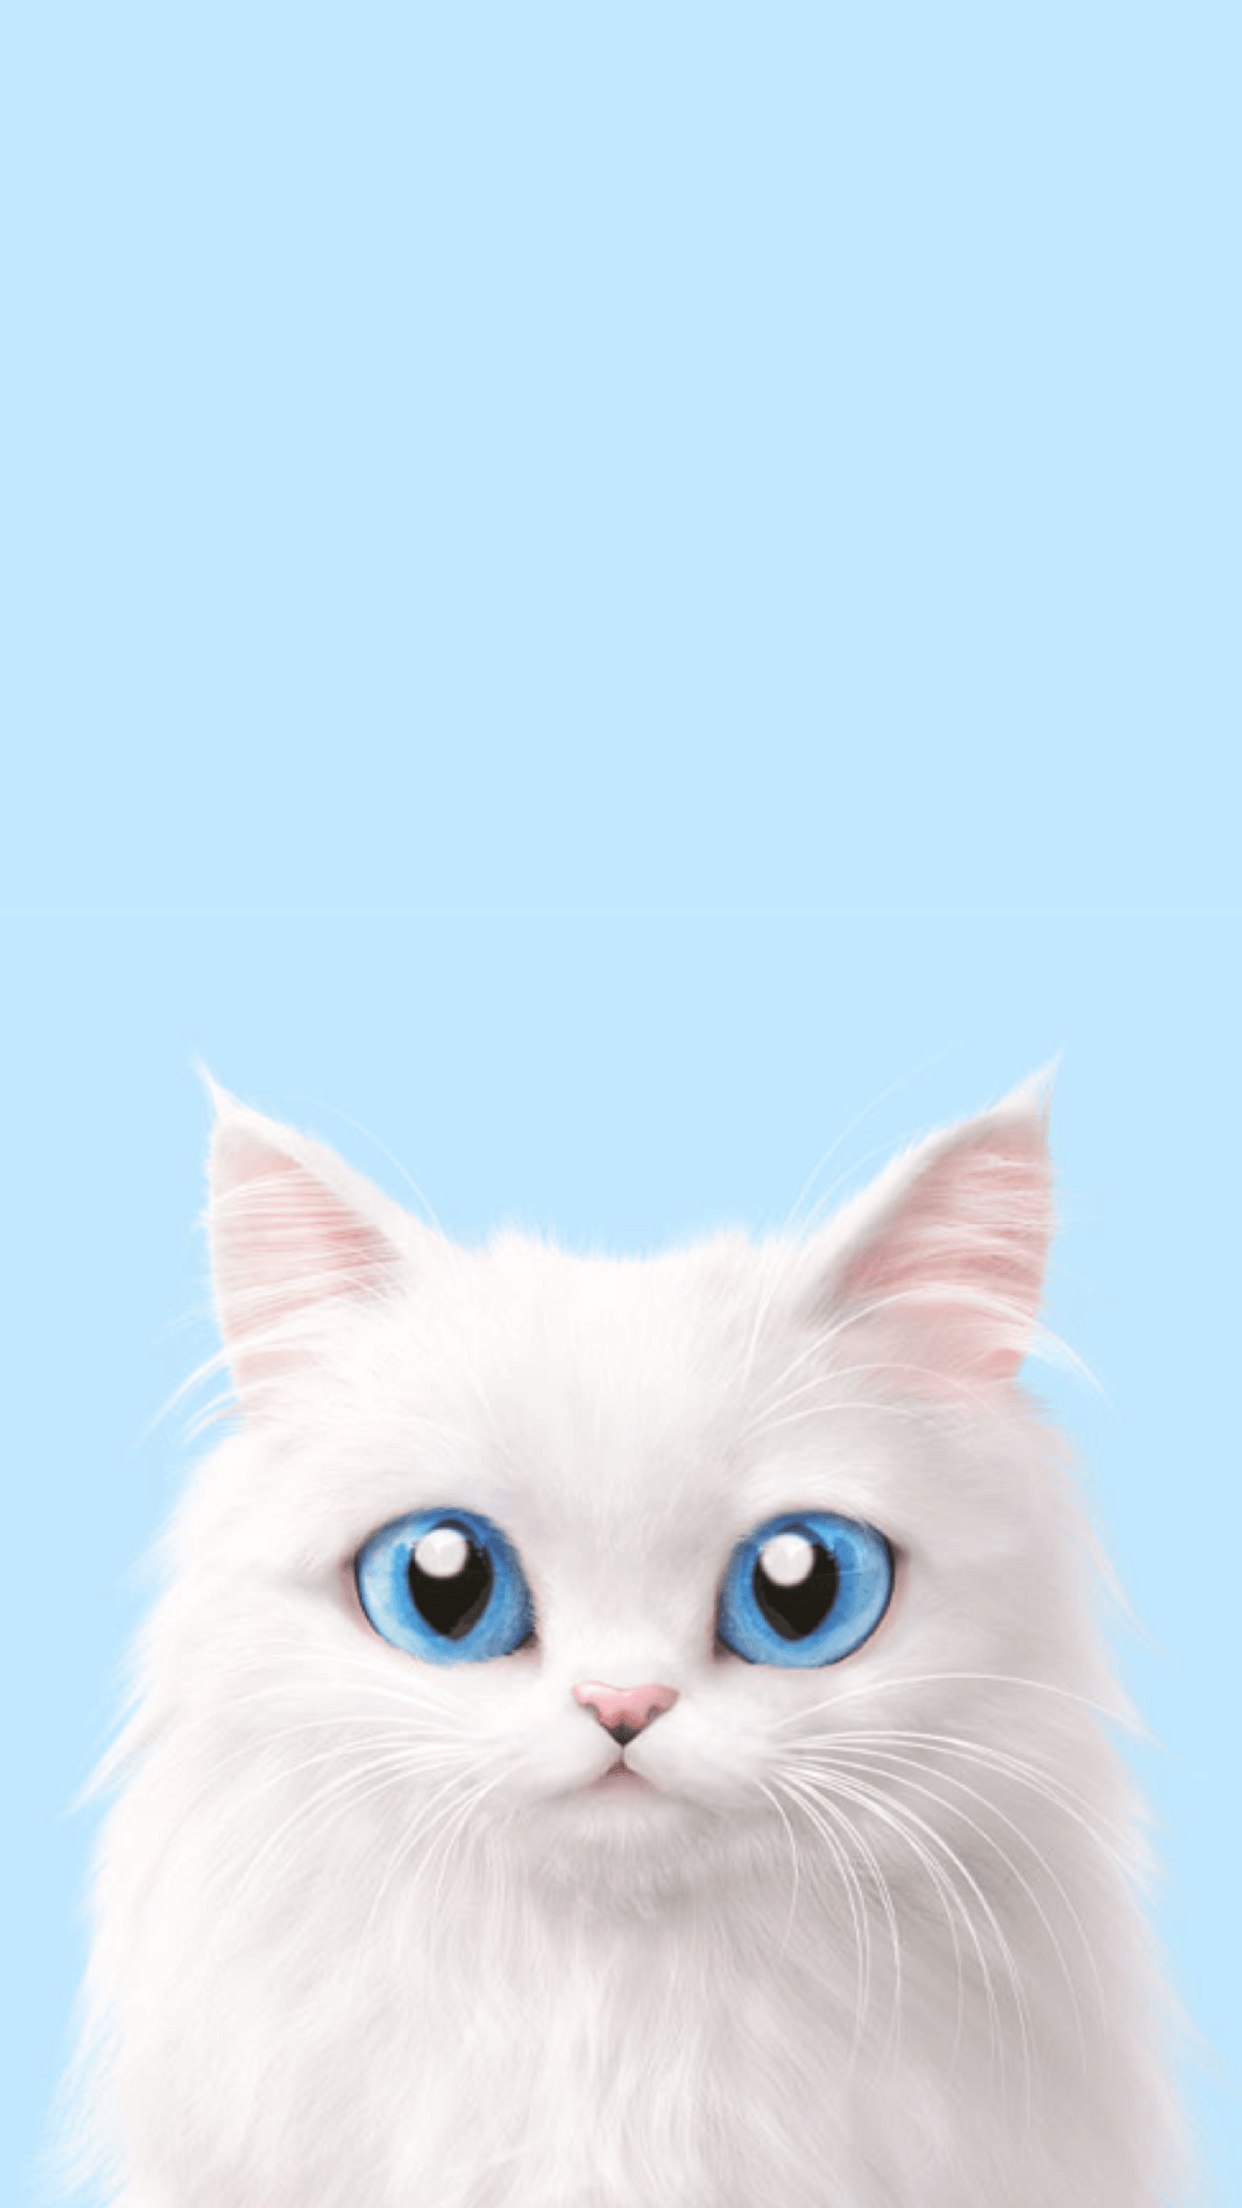 Cute Korean Cat Wallpapers   Top Cute Korean Cat Backgrounds 1242x2208